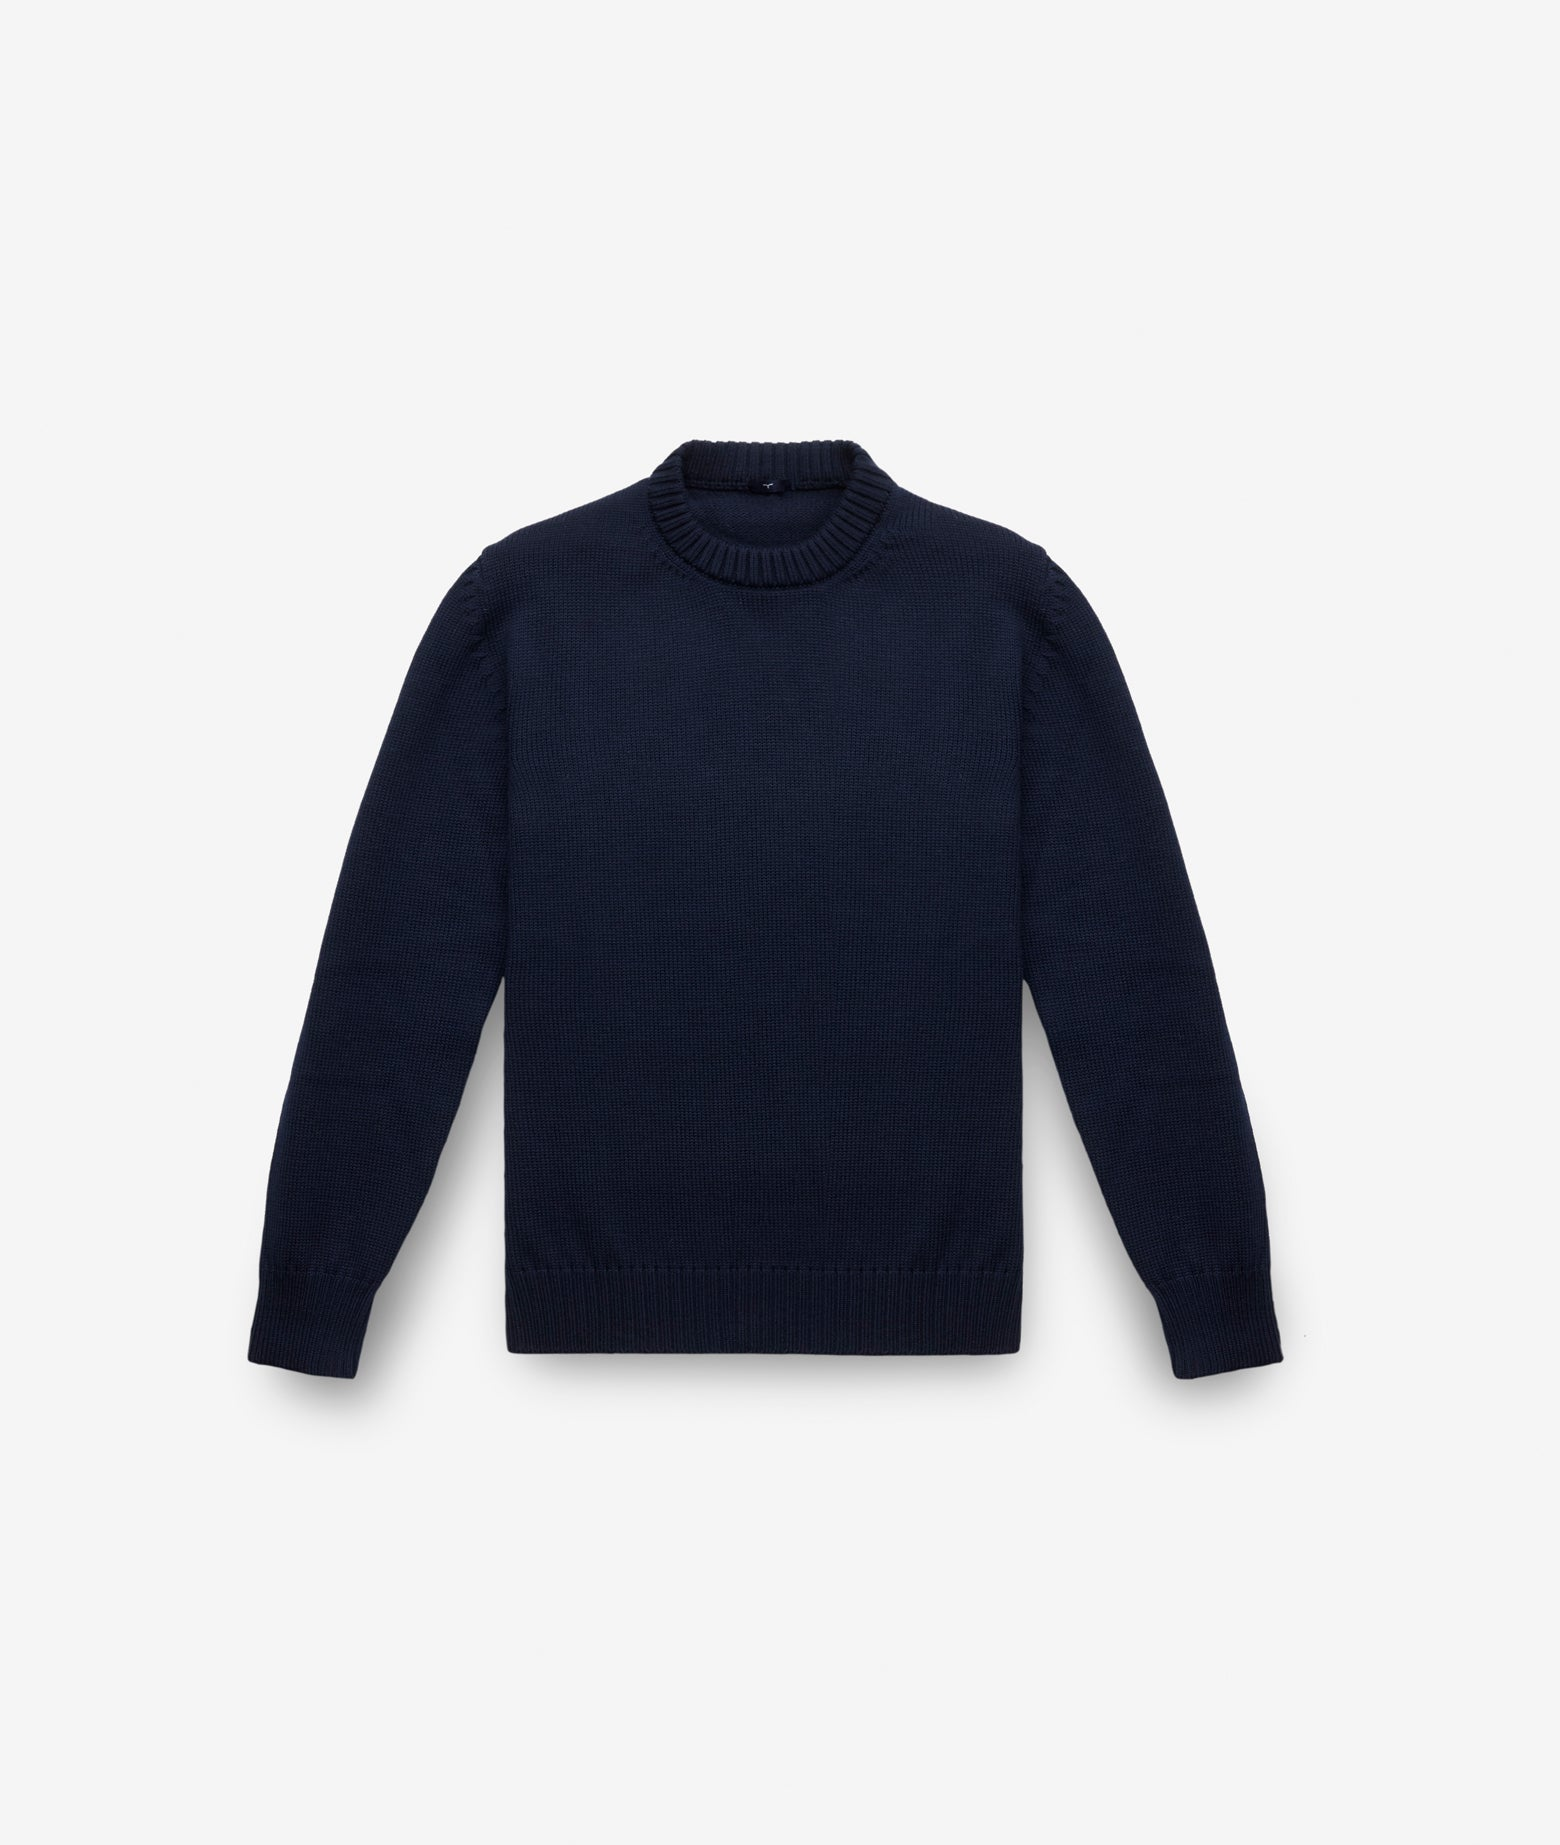 "Crew Neck Sweater ""Diablerets"""